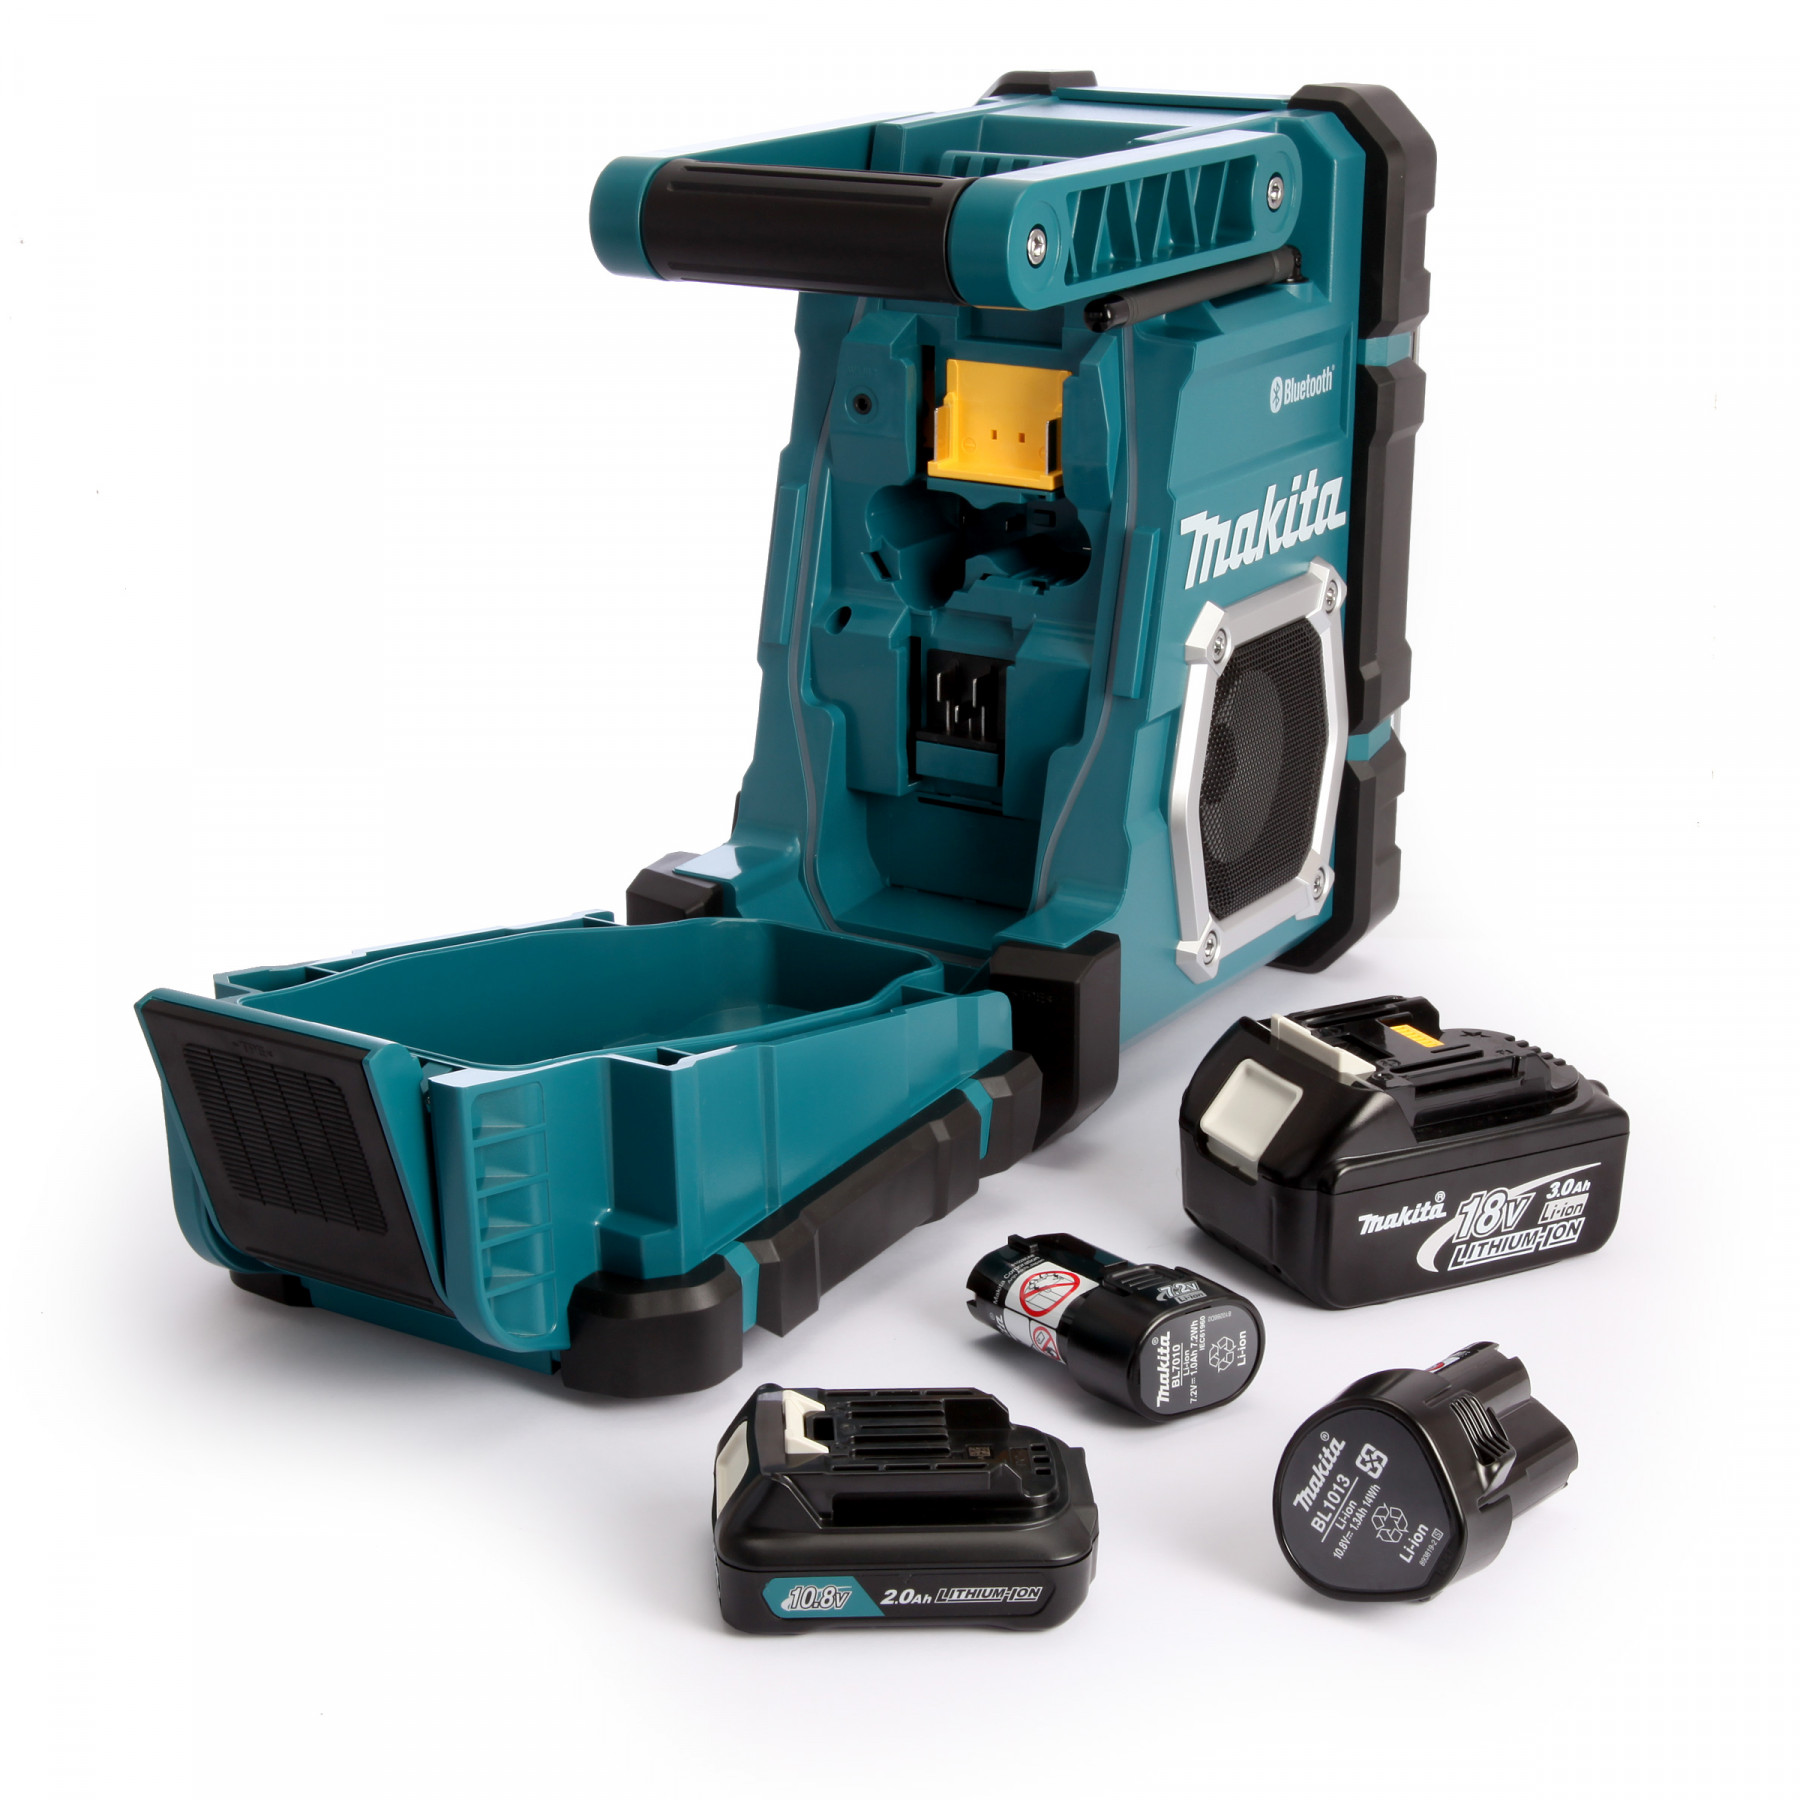 Makita dmr108 bouwradio met bluetooth toolmax - Radio makita dmr108 ...